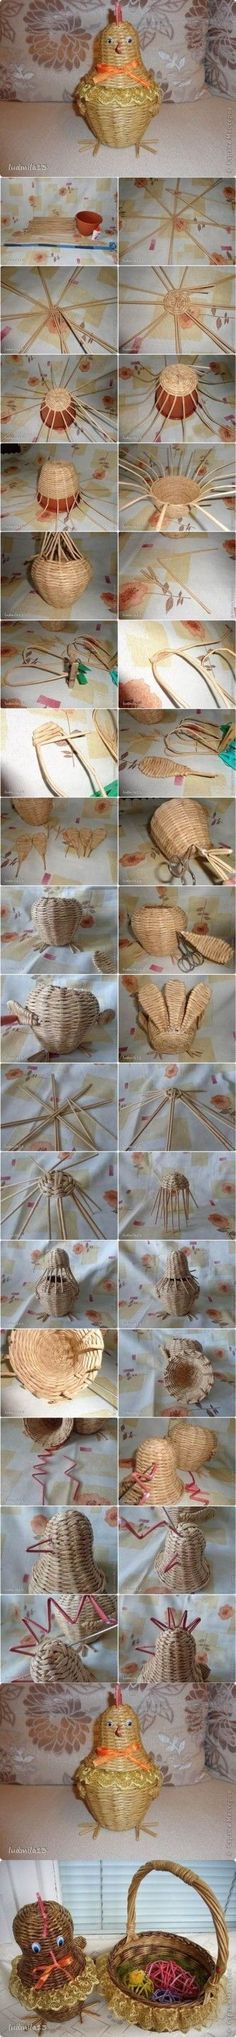 DIY Weaving Paper Chicken Basket 2 by magdalena